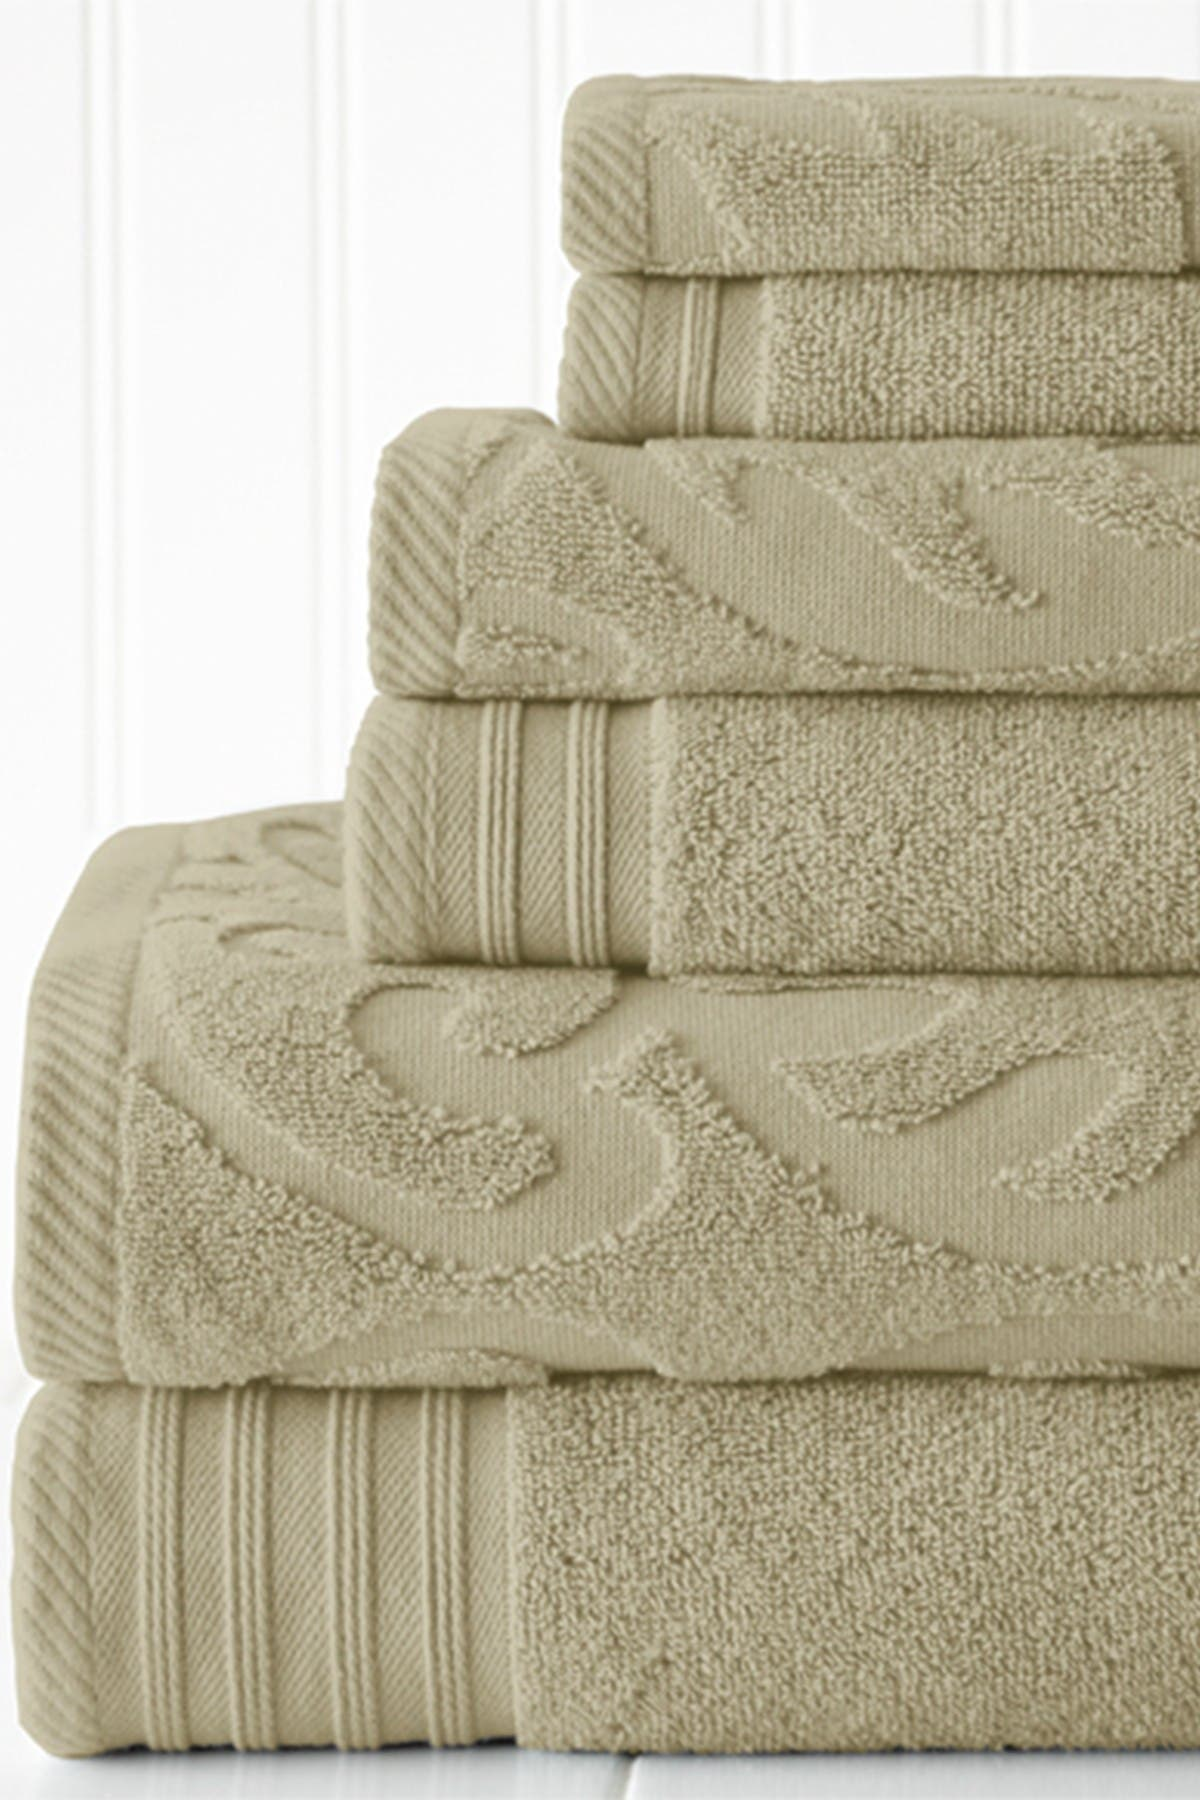 Image of Modern Threads Jacquard Medallion Swirl Solid 6-Piece Towel Set - Taupe